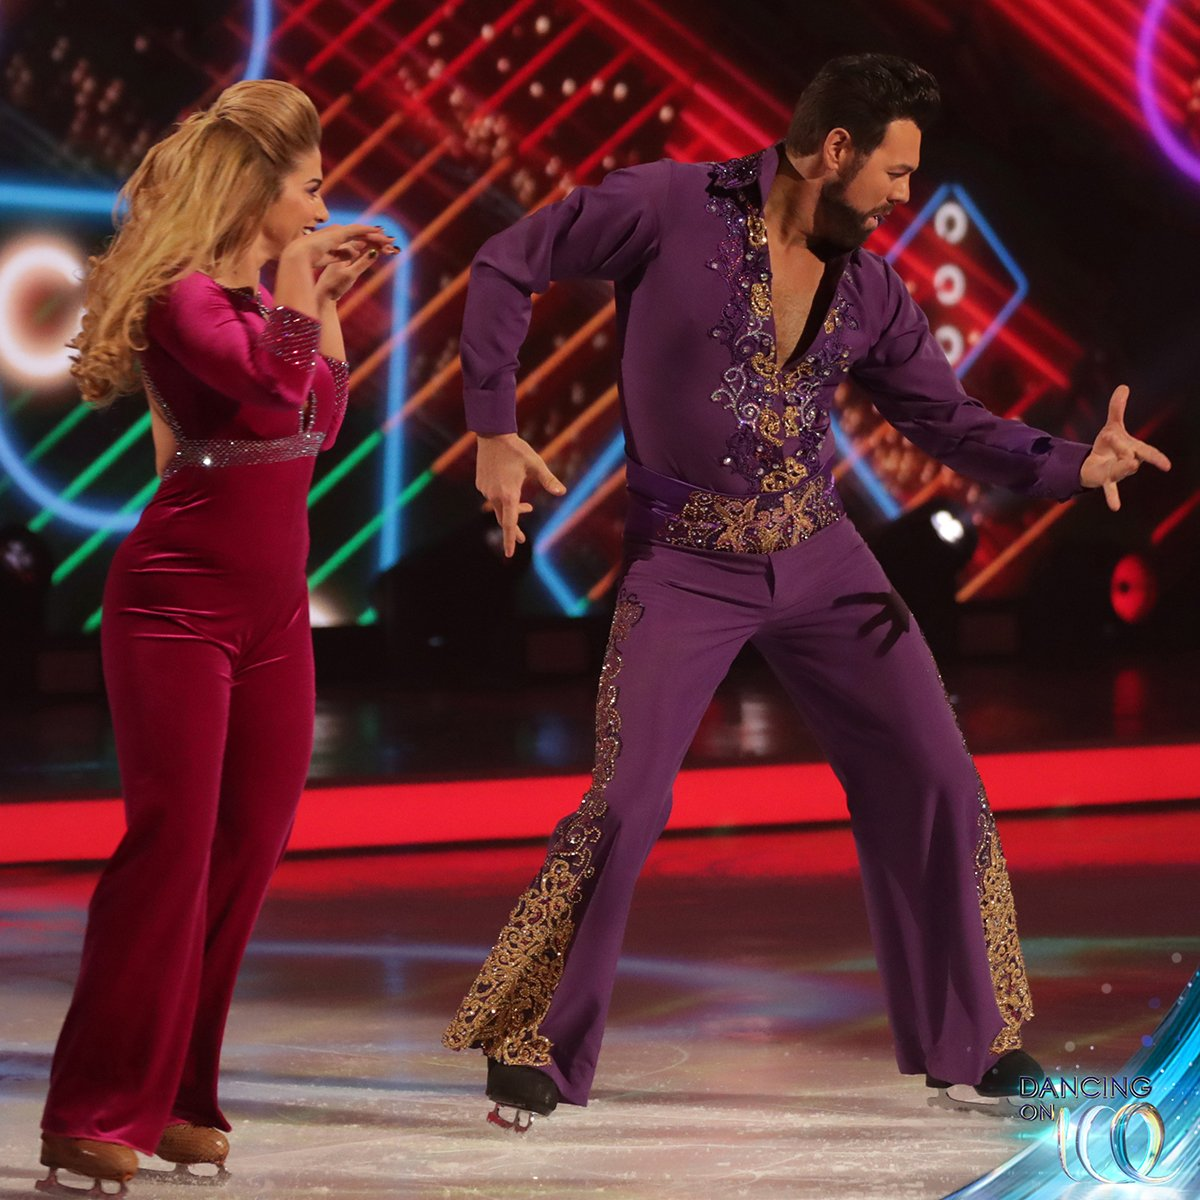 Dancing On Ice On Twitter Here They Are Presenting Your